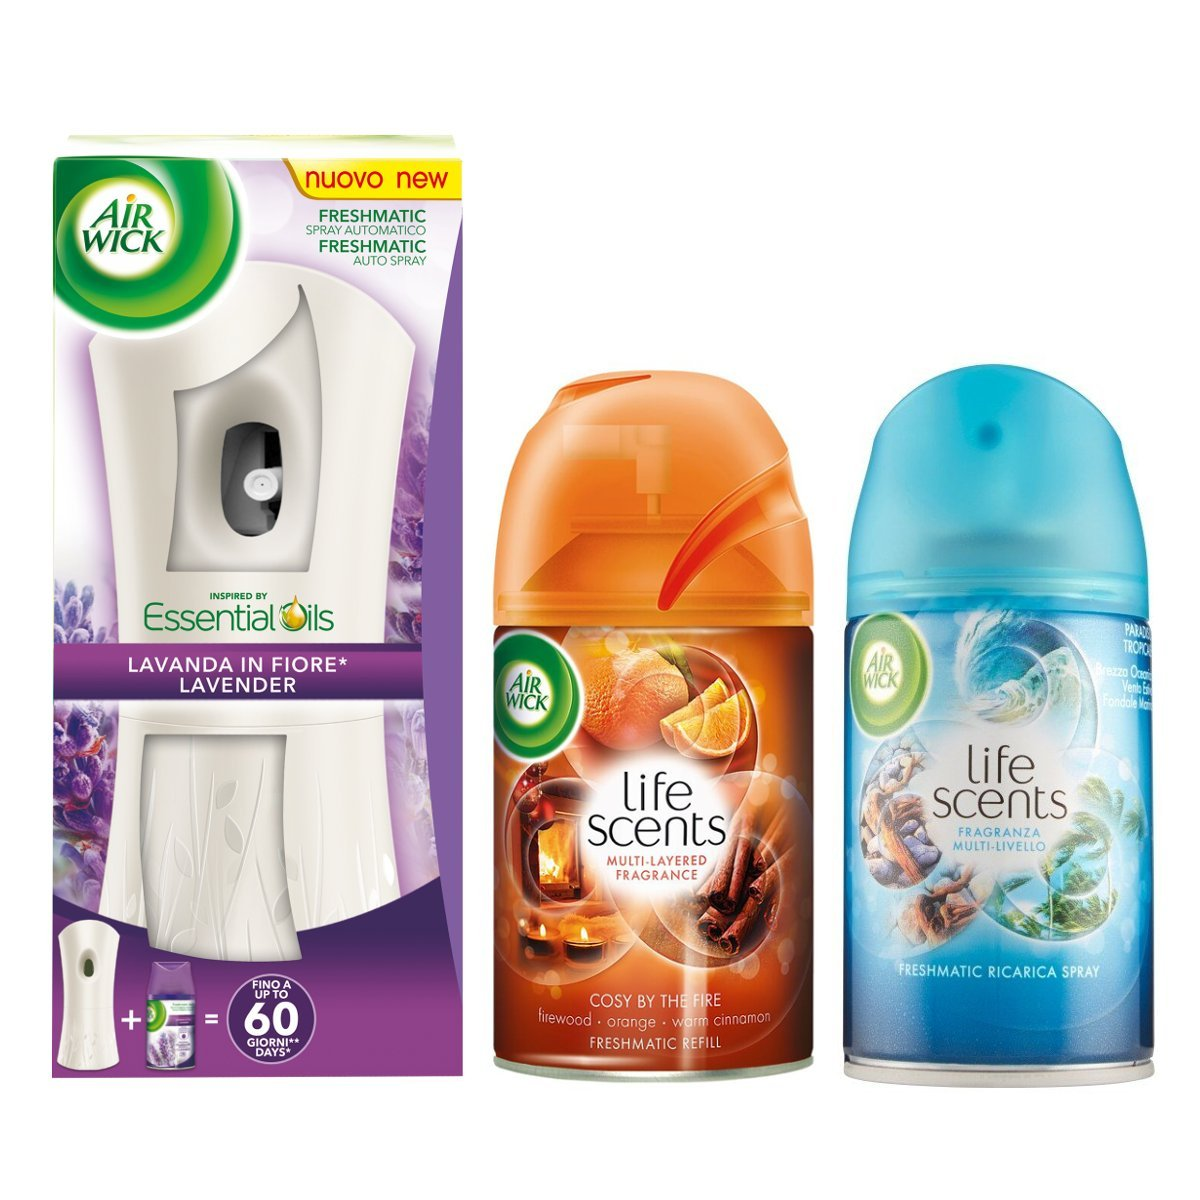 Air Wick Freshmatic Automatic Spray Holder Air Freshener Lavender in Fiore + Cosy By The Fire Refill + Tropical Paradise Refill